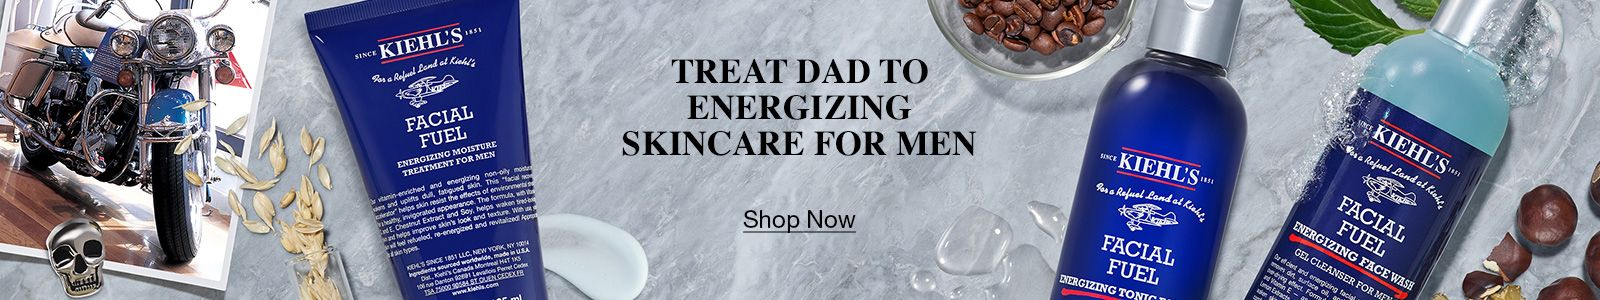 Treat Dad To Energizing Skincare For Men